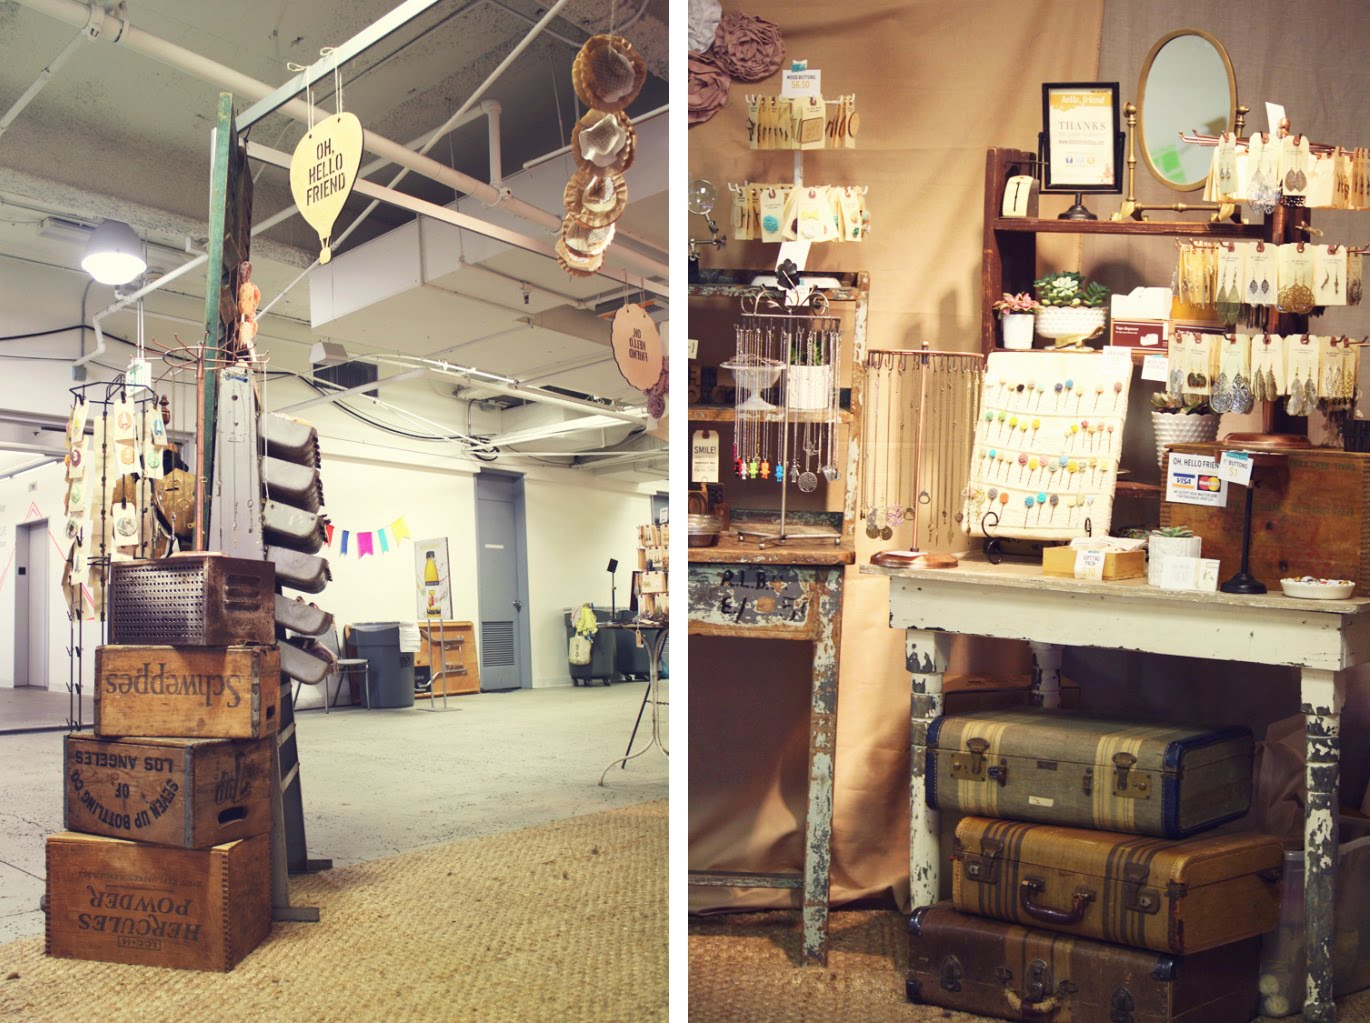 Aag craft fairs 101 part 2 for Craft shows in ohio